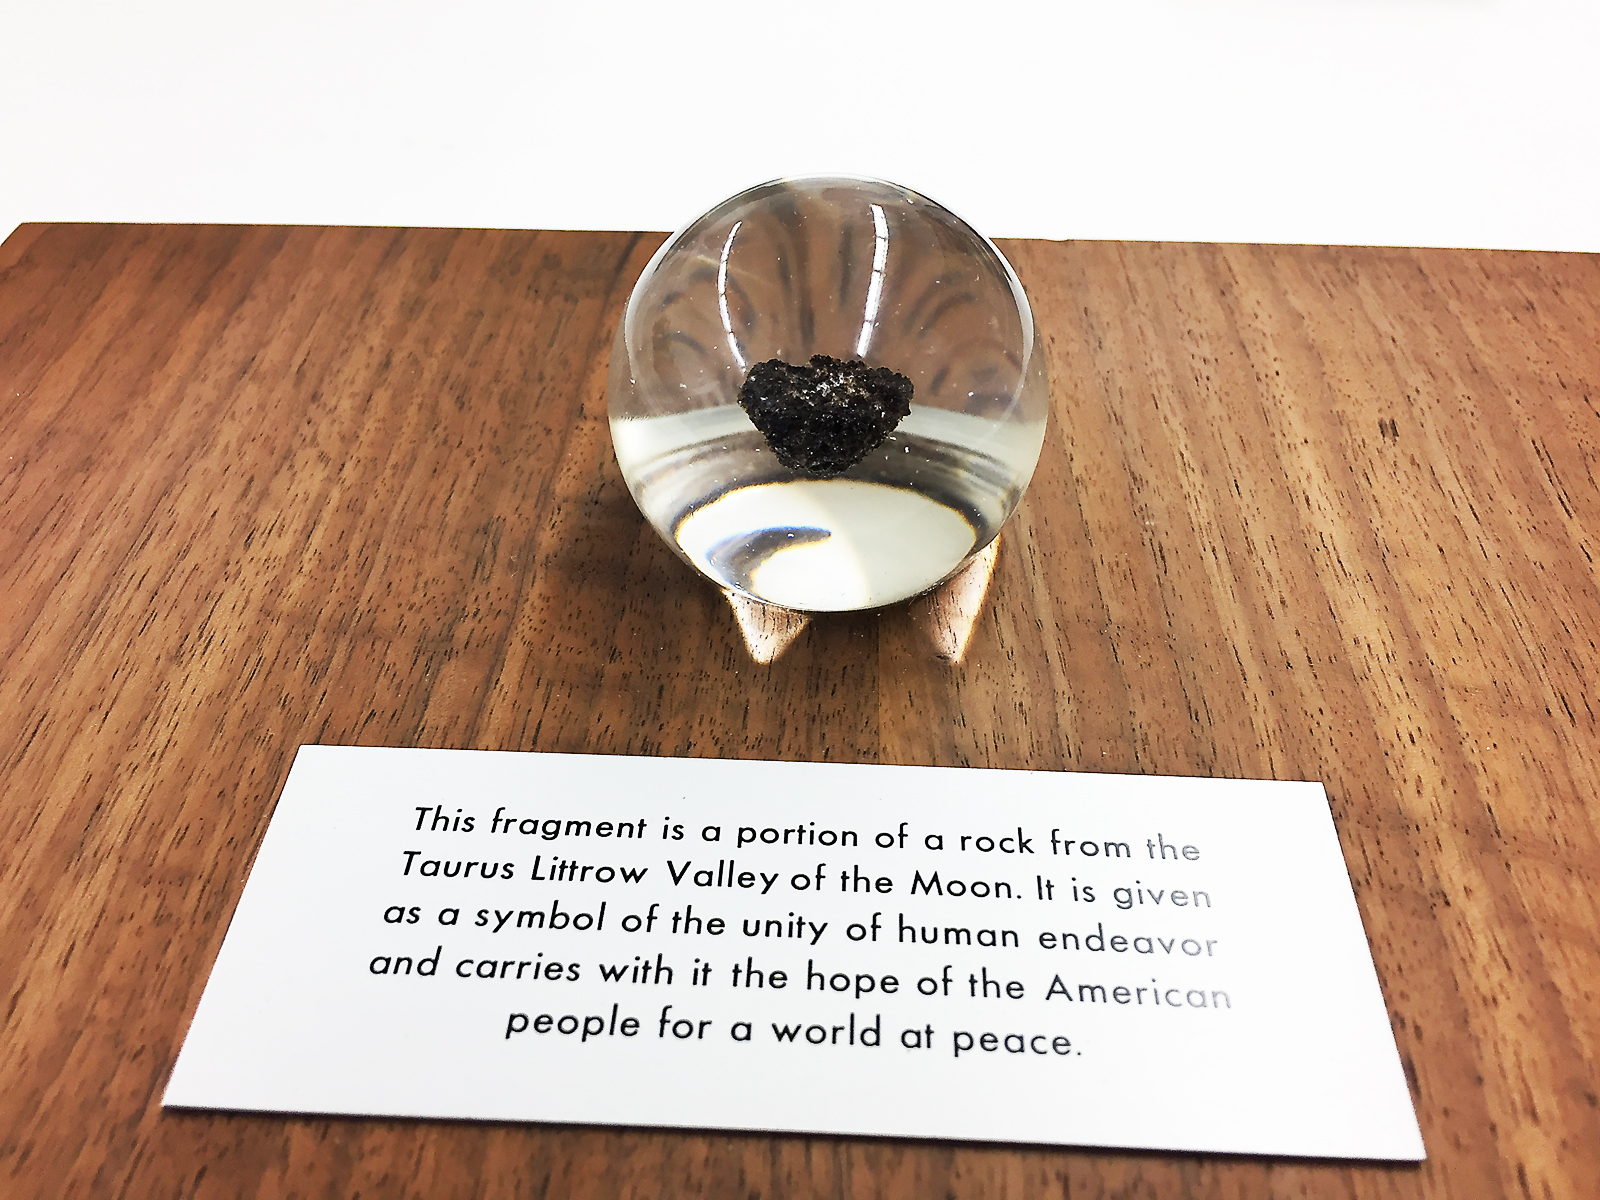 Canada's fragment of moon rock